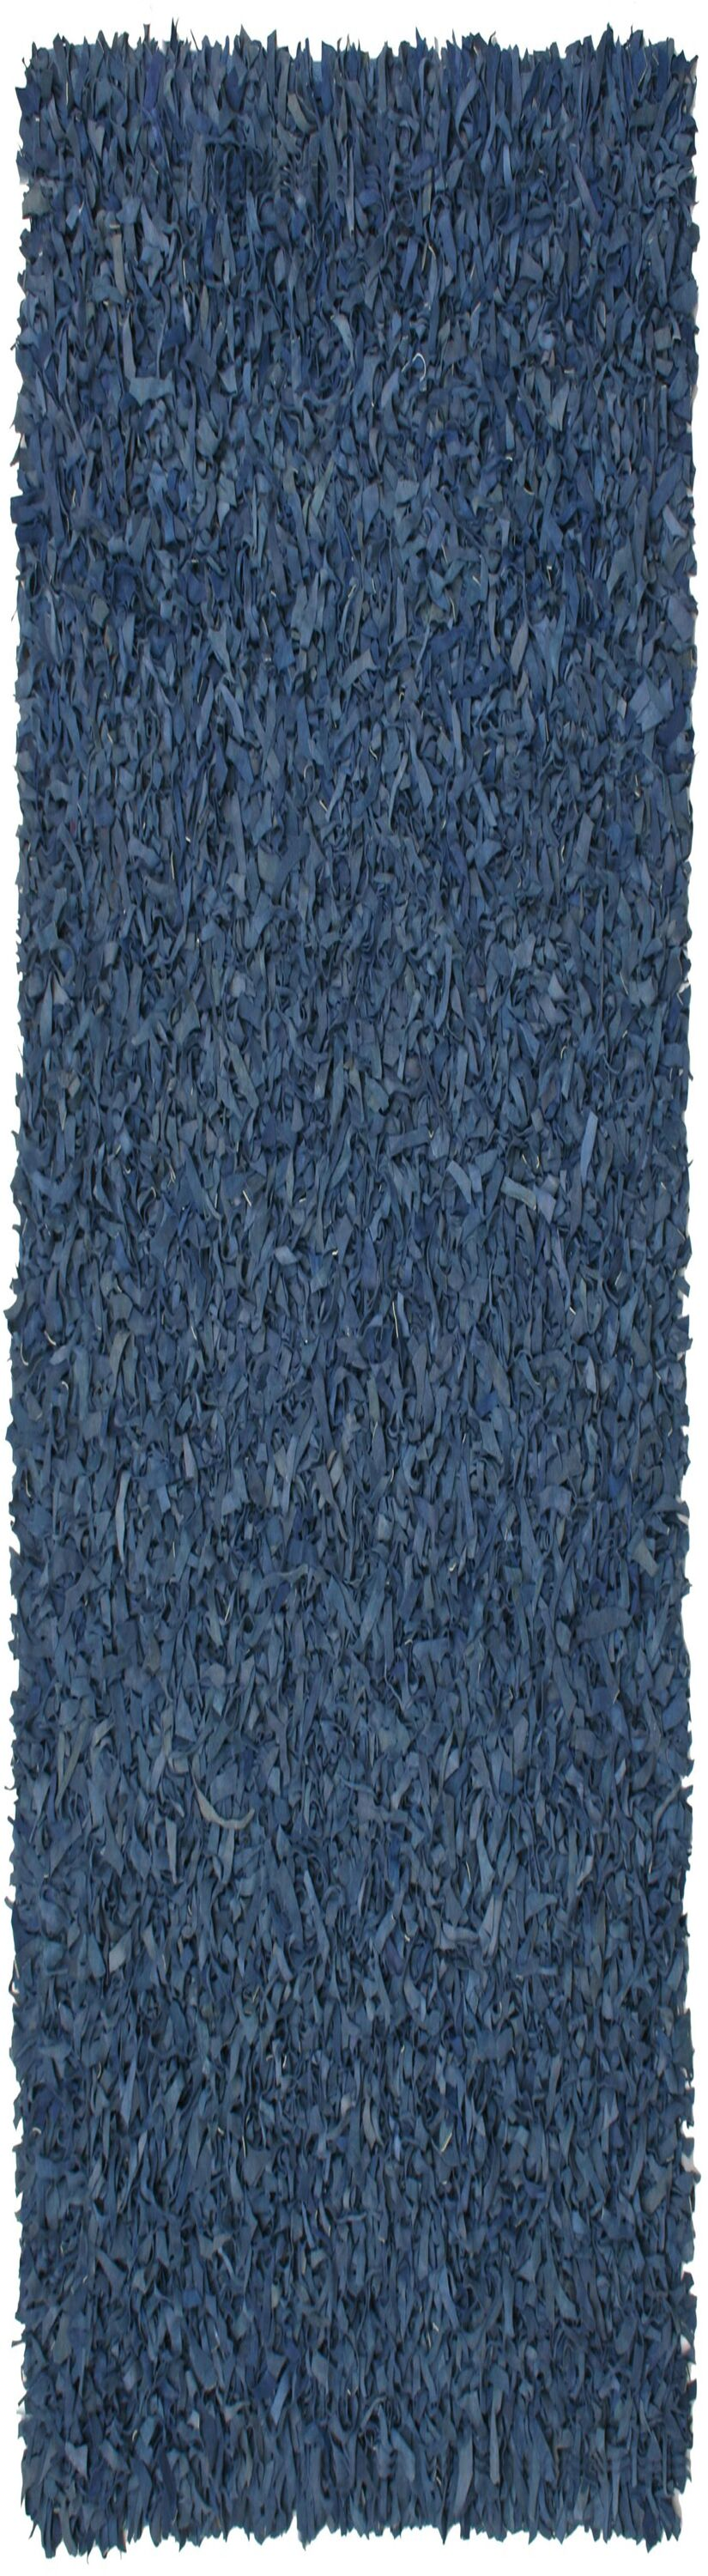 Baum Leather Shag Blue Area Rug Rug Size: Runner 2'5